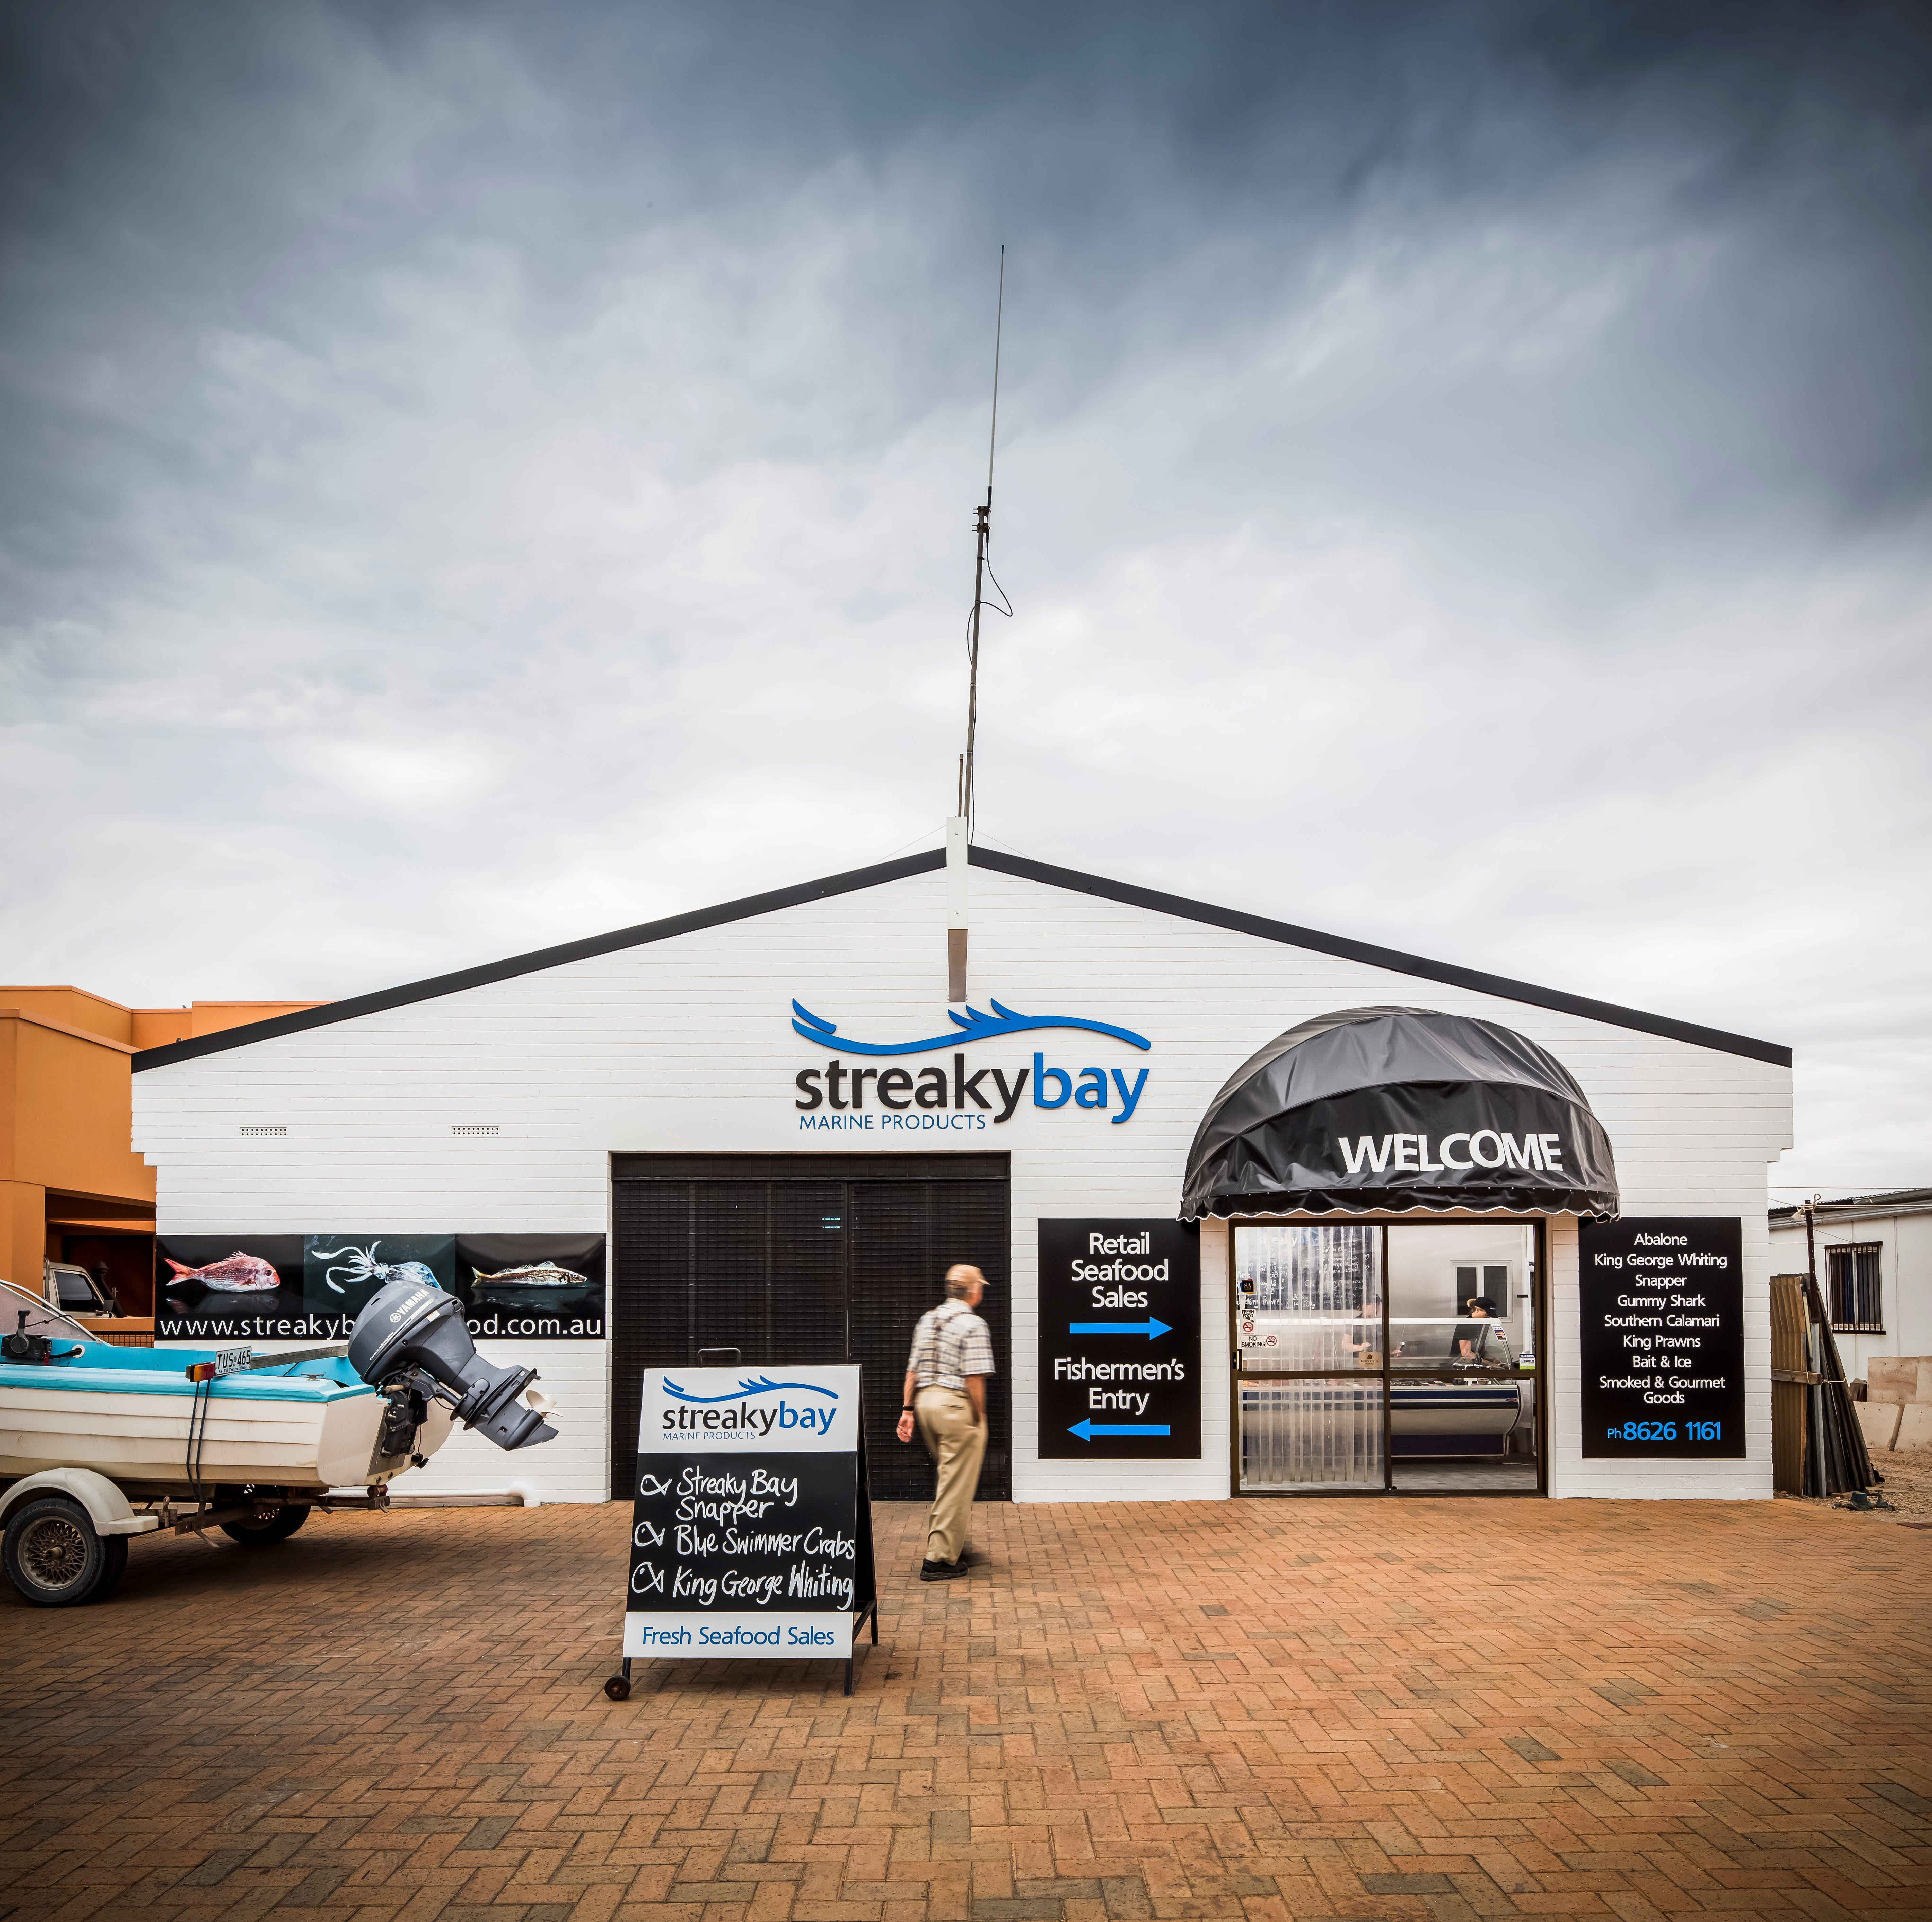 Streaky Bay Marine Products - tourismnoosa.com